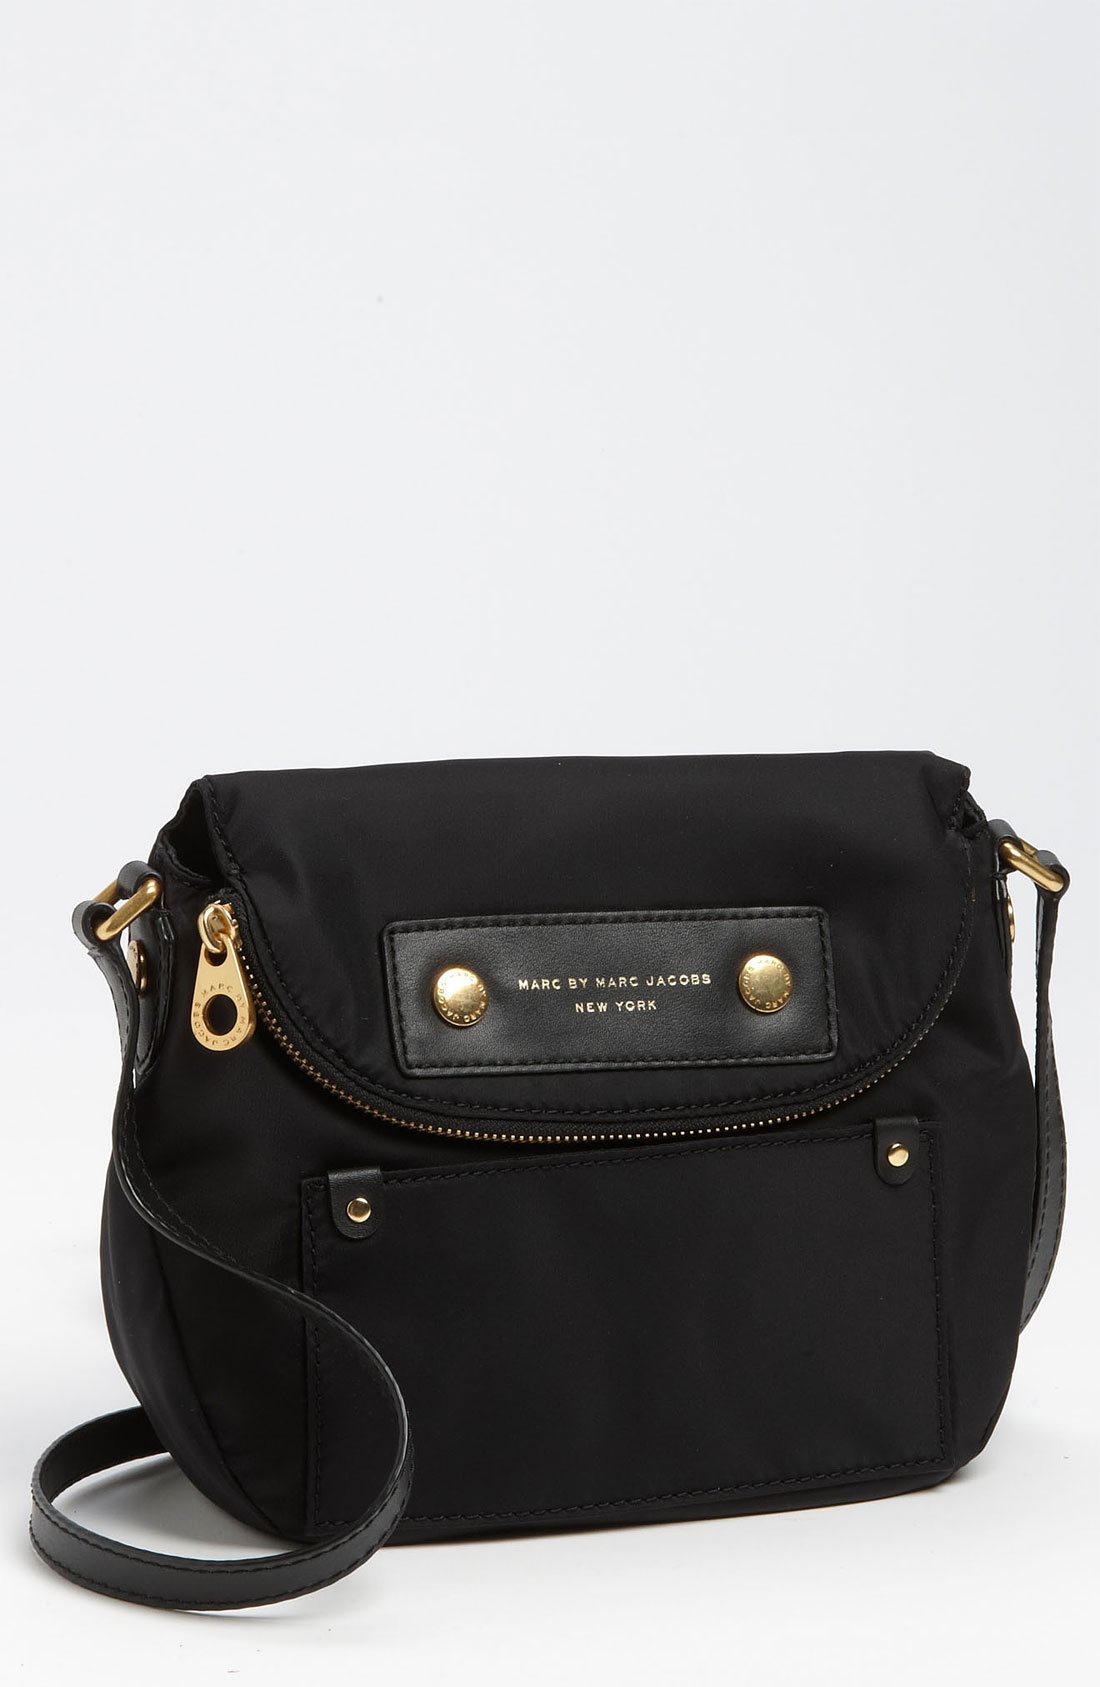 marc by marc jacobs 39 preppy nylon natasha mini 39 crossbody bag in black lyst. Black Bedroom Furniture Sets. Home Design Ideas